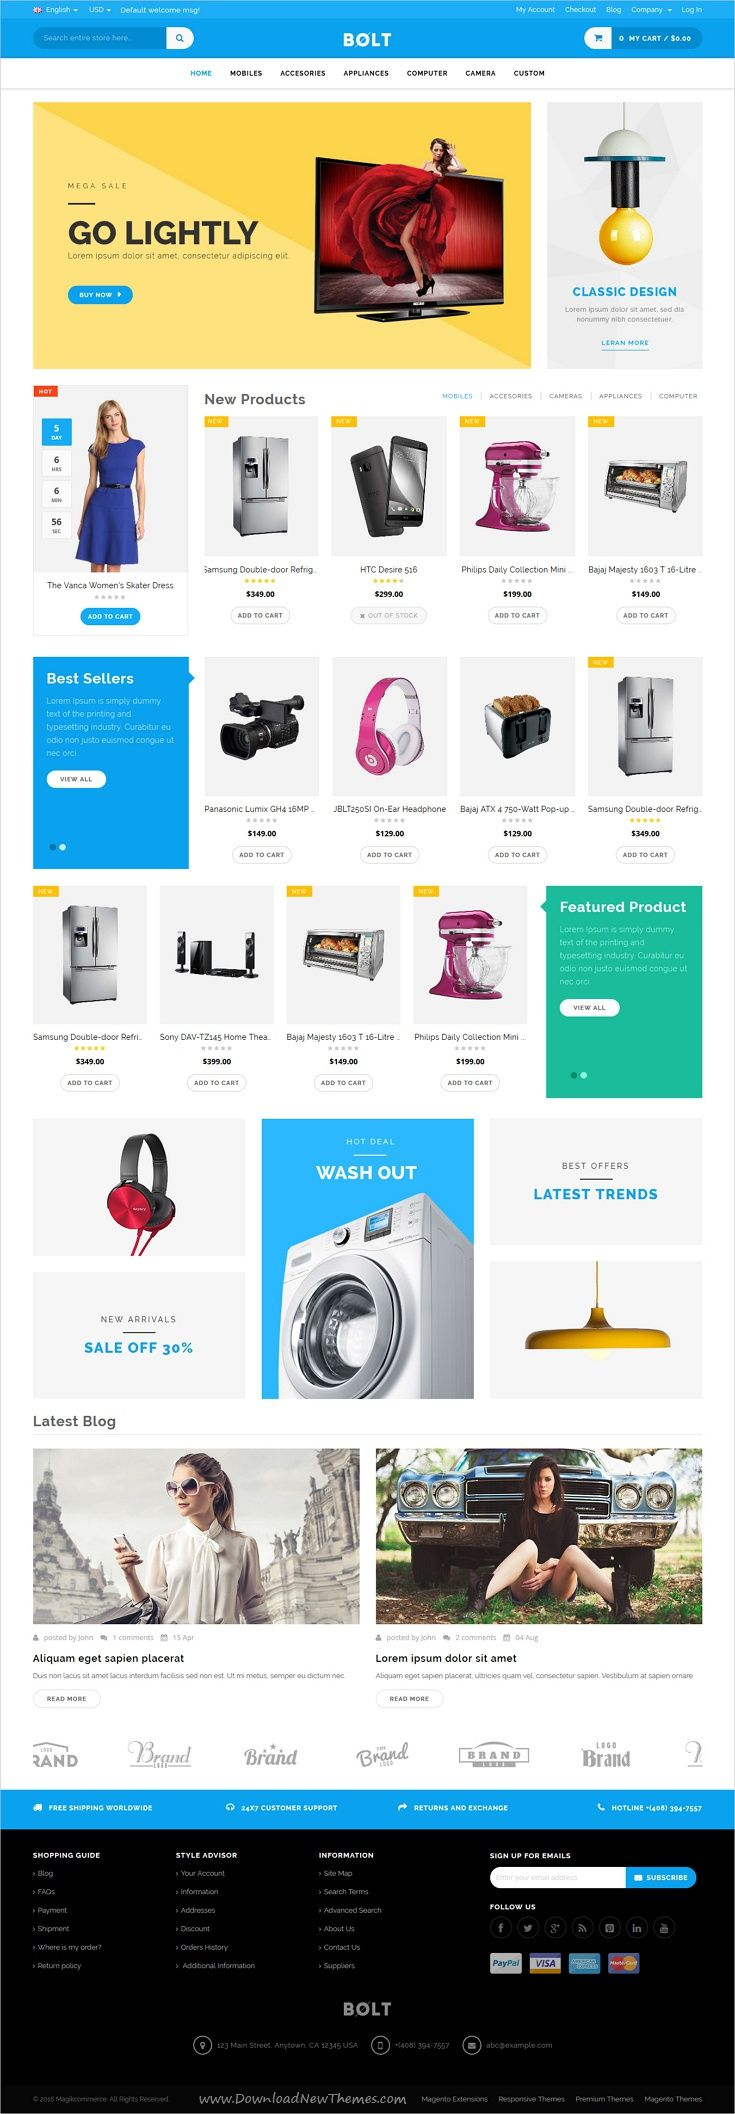 Bolt is a clean, modern and highly customizable responsive #Magento theme for stunning #electronics store #eCommerce website with 3 unique homepage layouts download now➩ https://themeforest.net/item/bolt-responsive-magento-theme/19460327?ref=Datasata